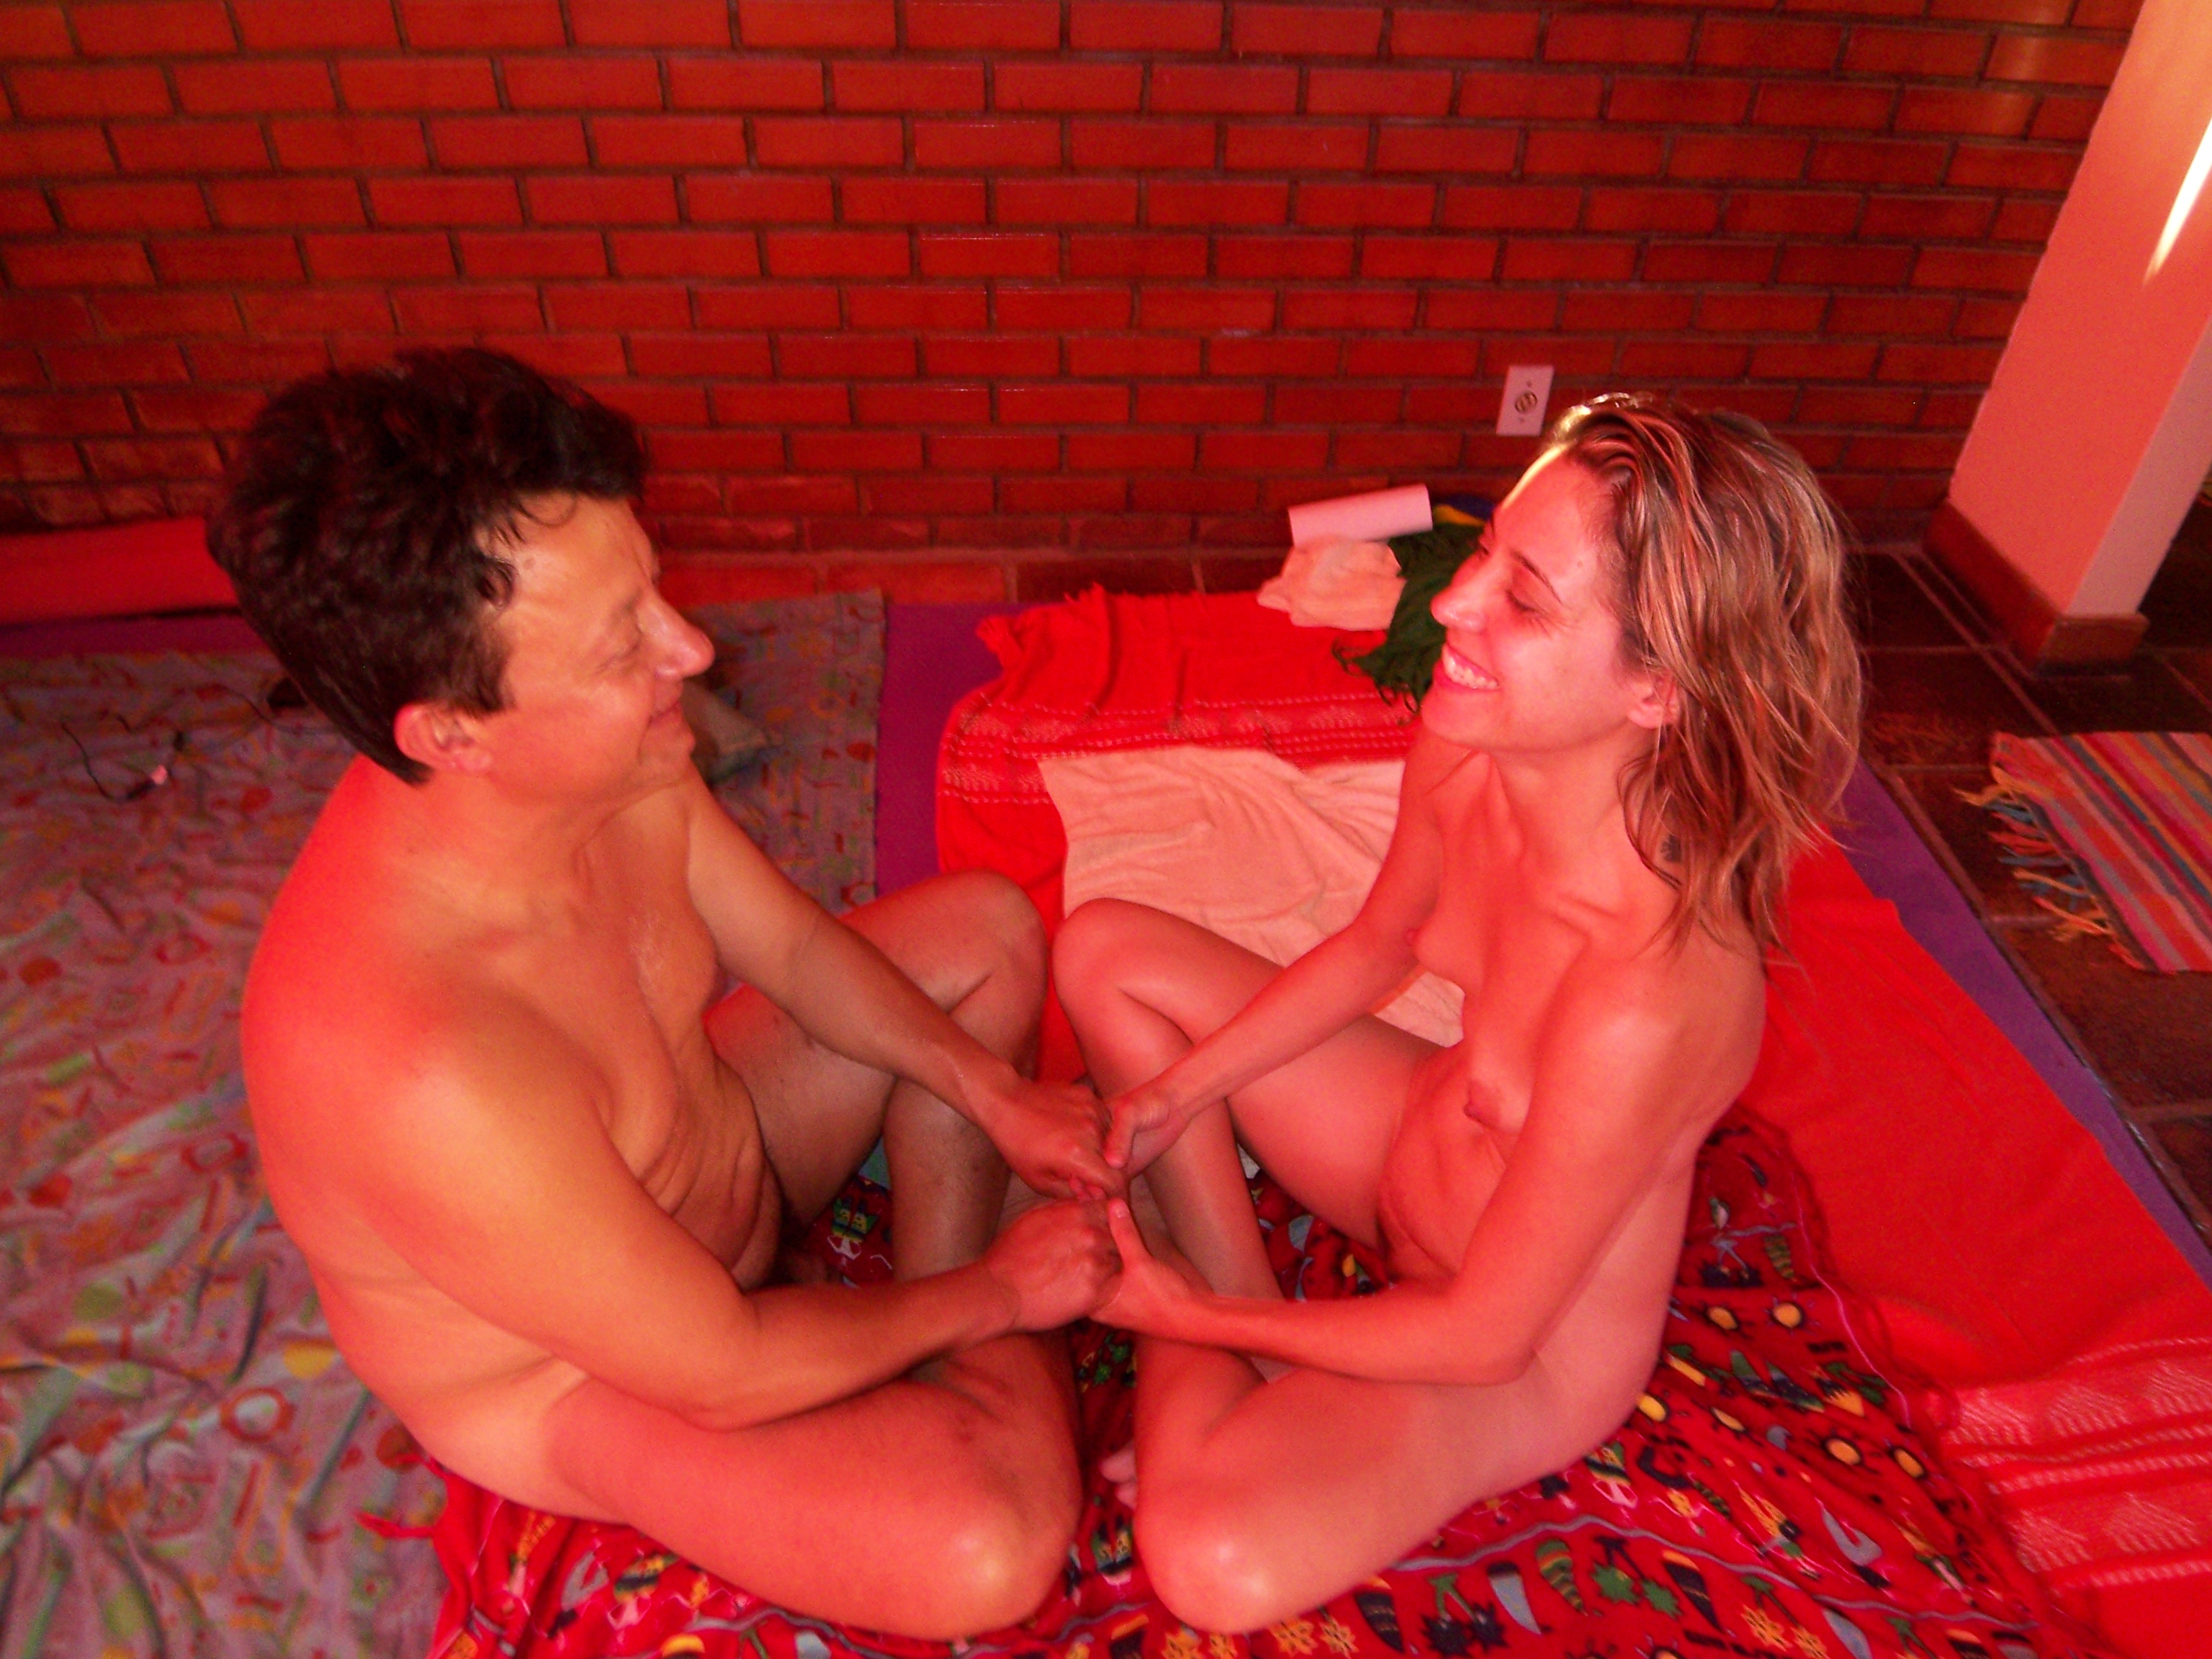 real tantric massage video luksusescort